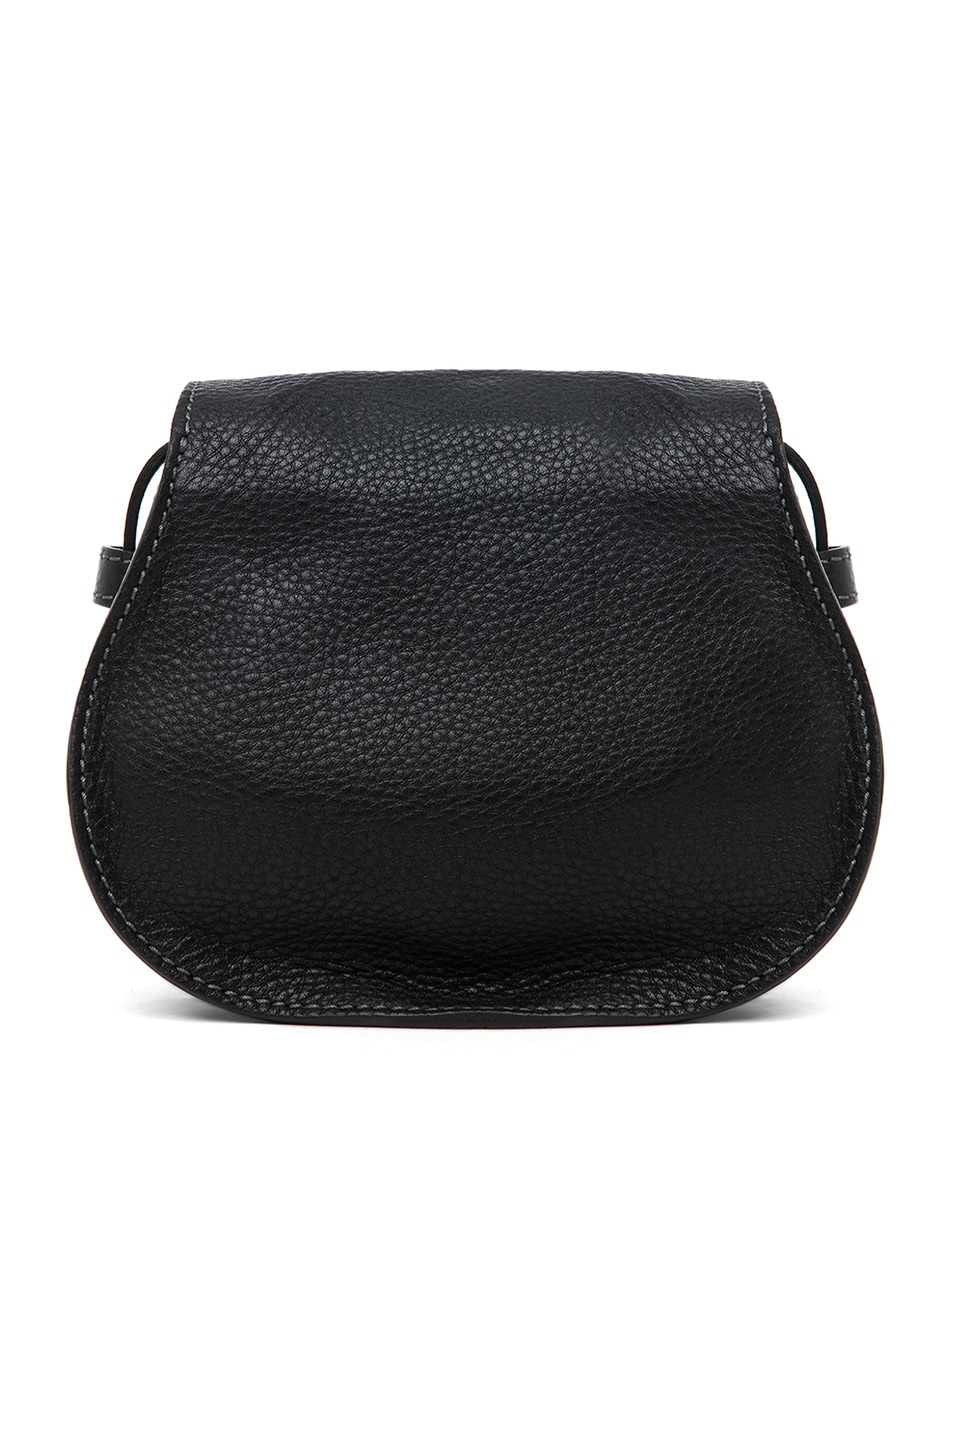 Image 3 of Chloe Marcie Satchel in Black